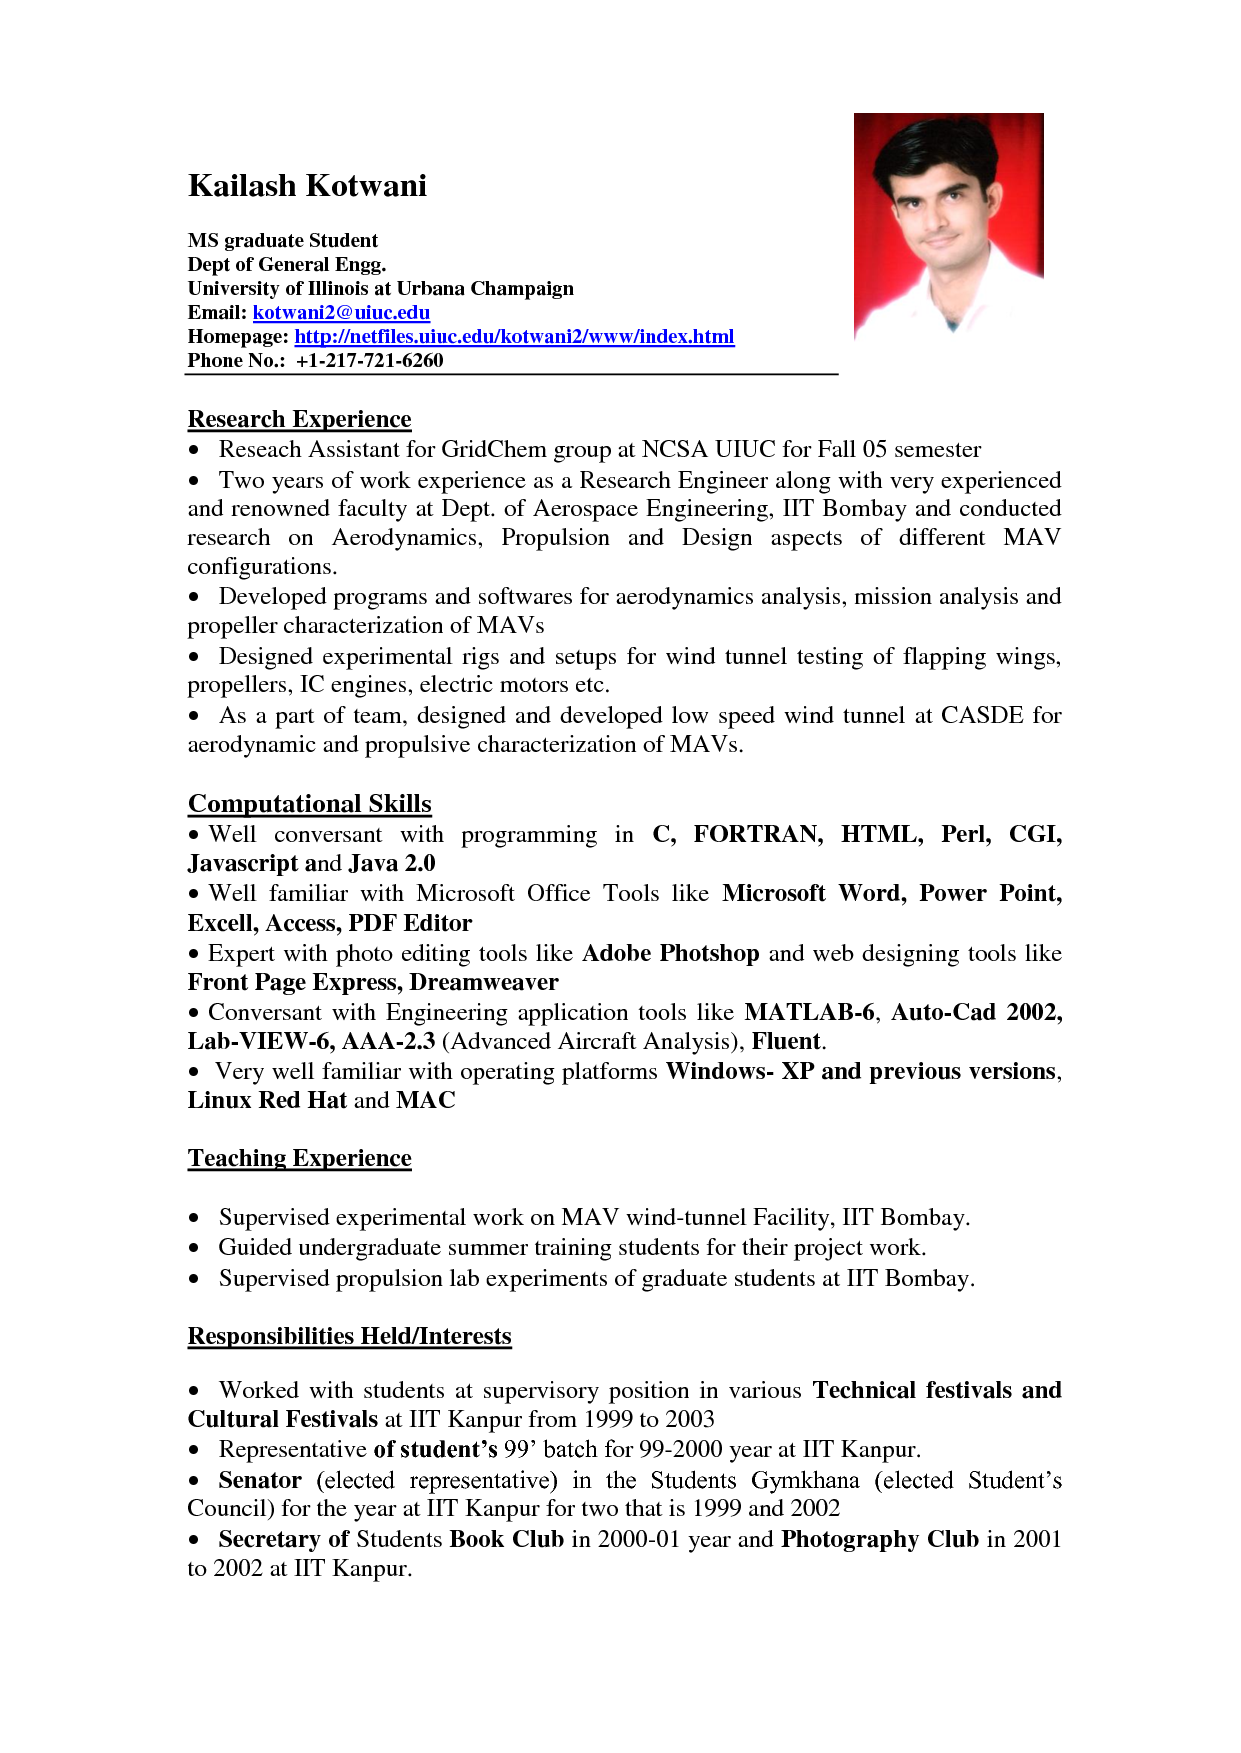 resume format for students with no experience Parlobuenacocinaco